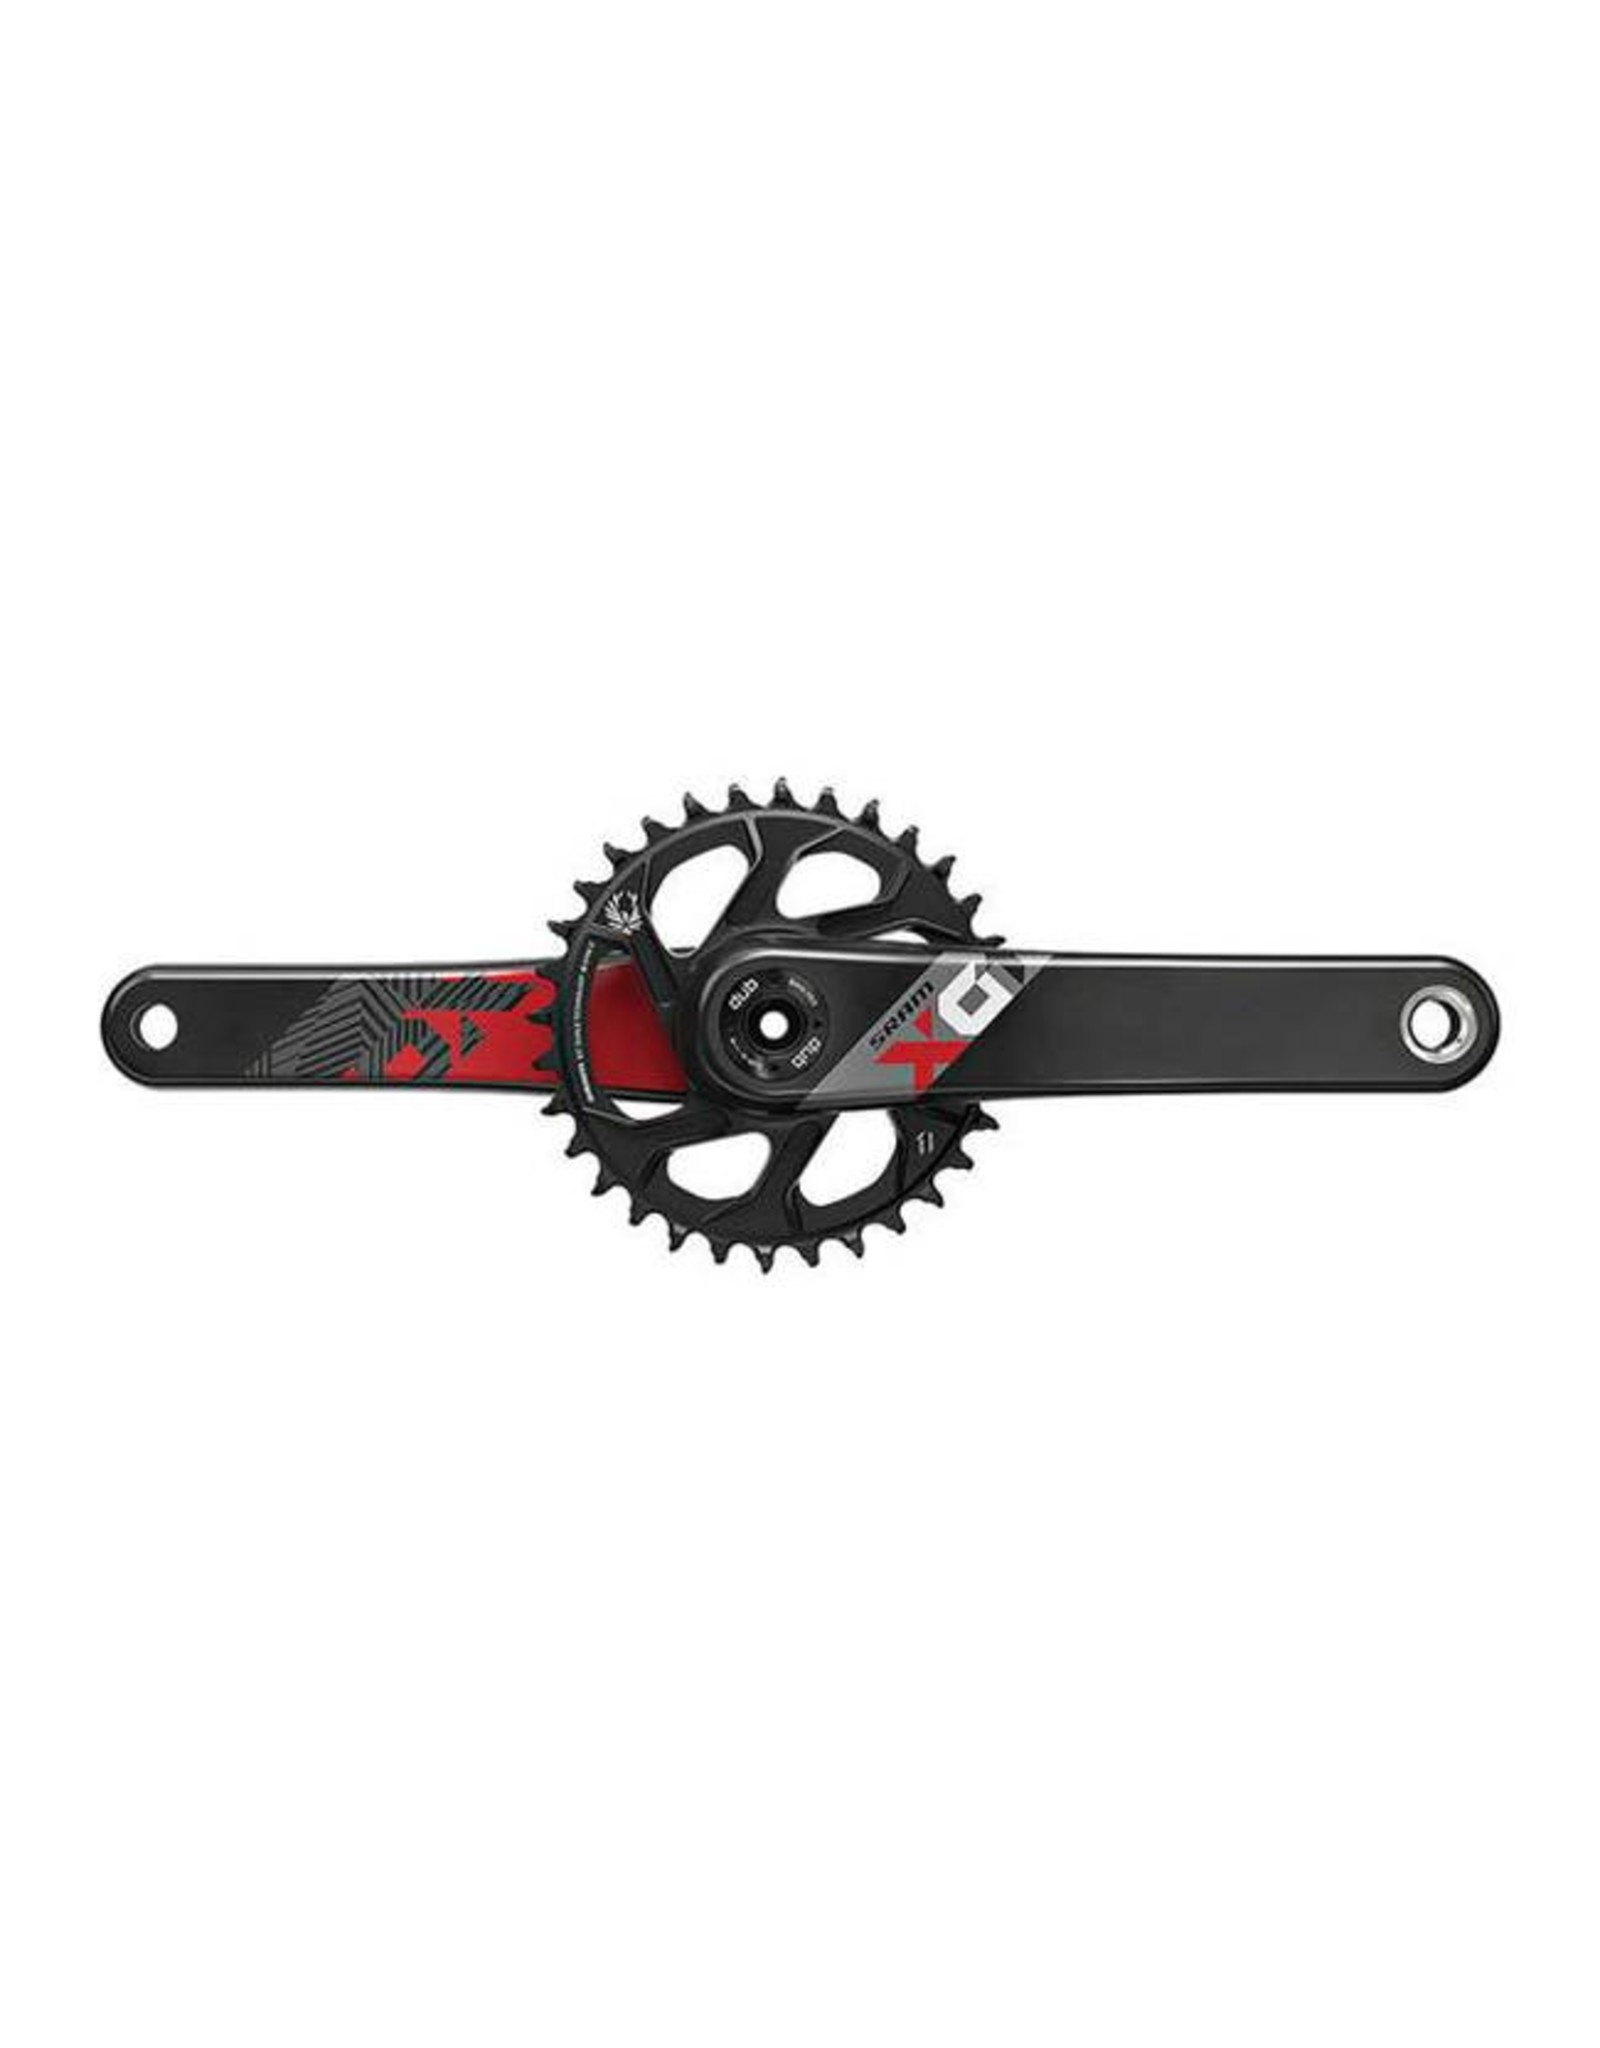 SRAM SRAM X01 Eagle Carbon Boost 148 DUB Crankset 175mm Direct Mount 32t X- Sync 2 Chainring Red, Bottom Bracket Not Included